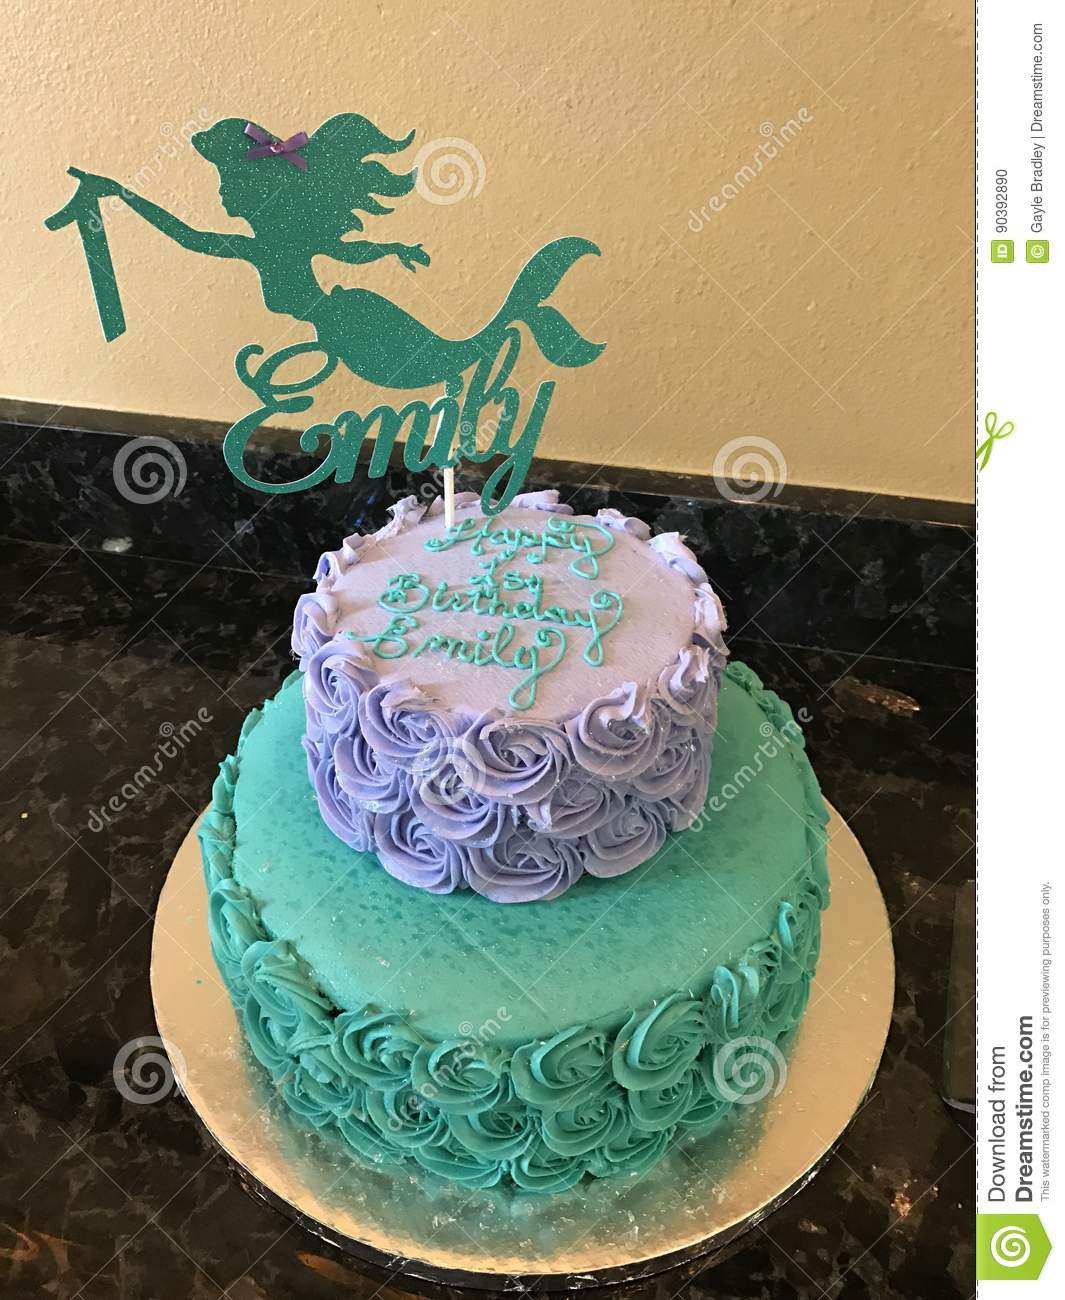 Excellent Mermaid Birthday Cake Stock Photo Image Of Emily Mermaid 90392890 Funny Birthday Cards Online Alyptdamsfinfo